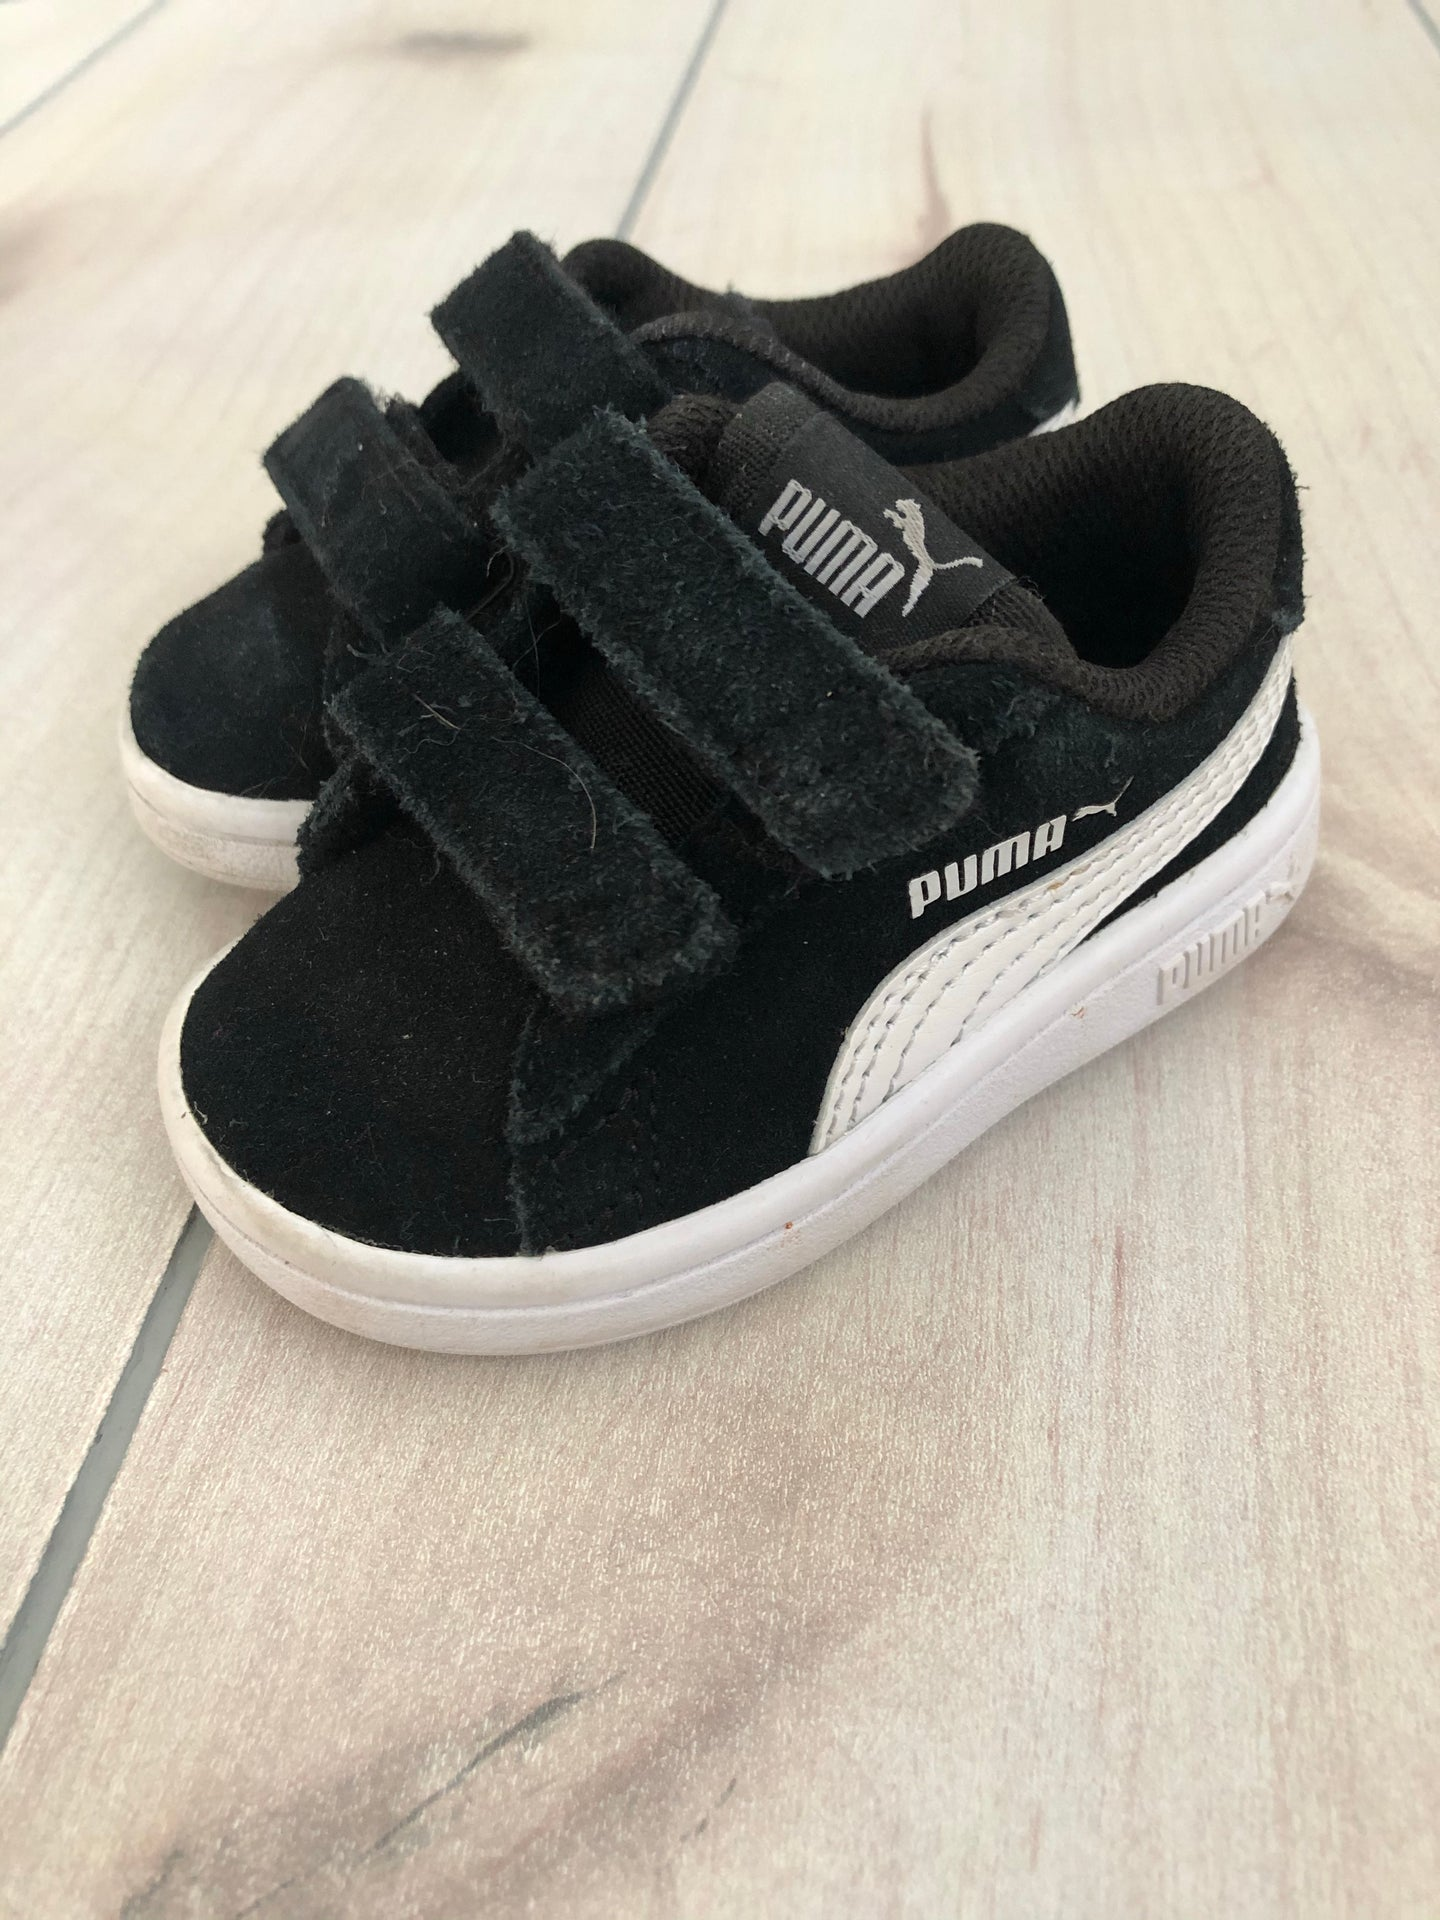 Puma Boys Black and White Sneakers Size 4